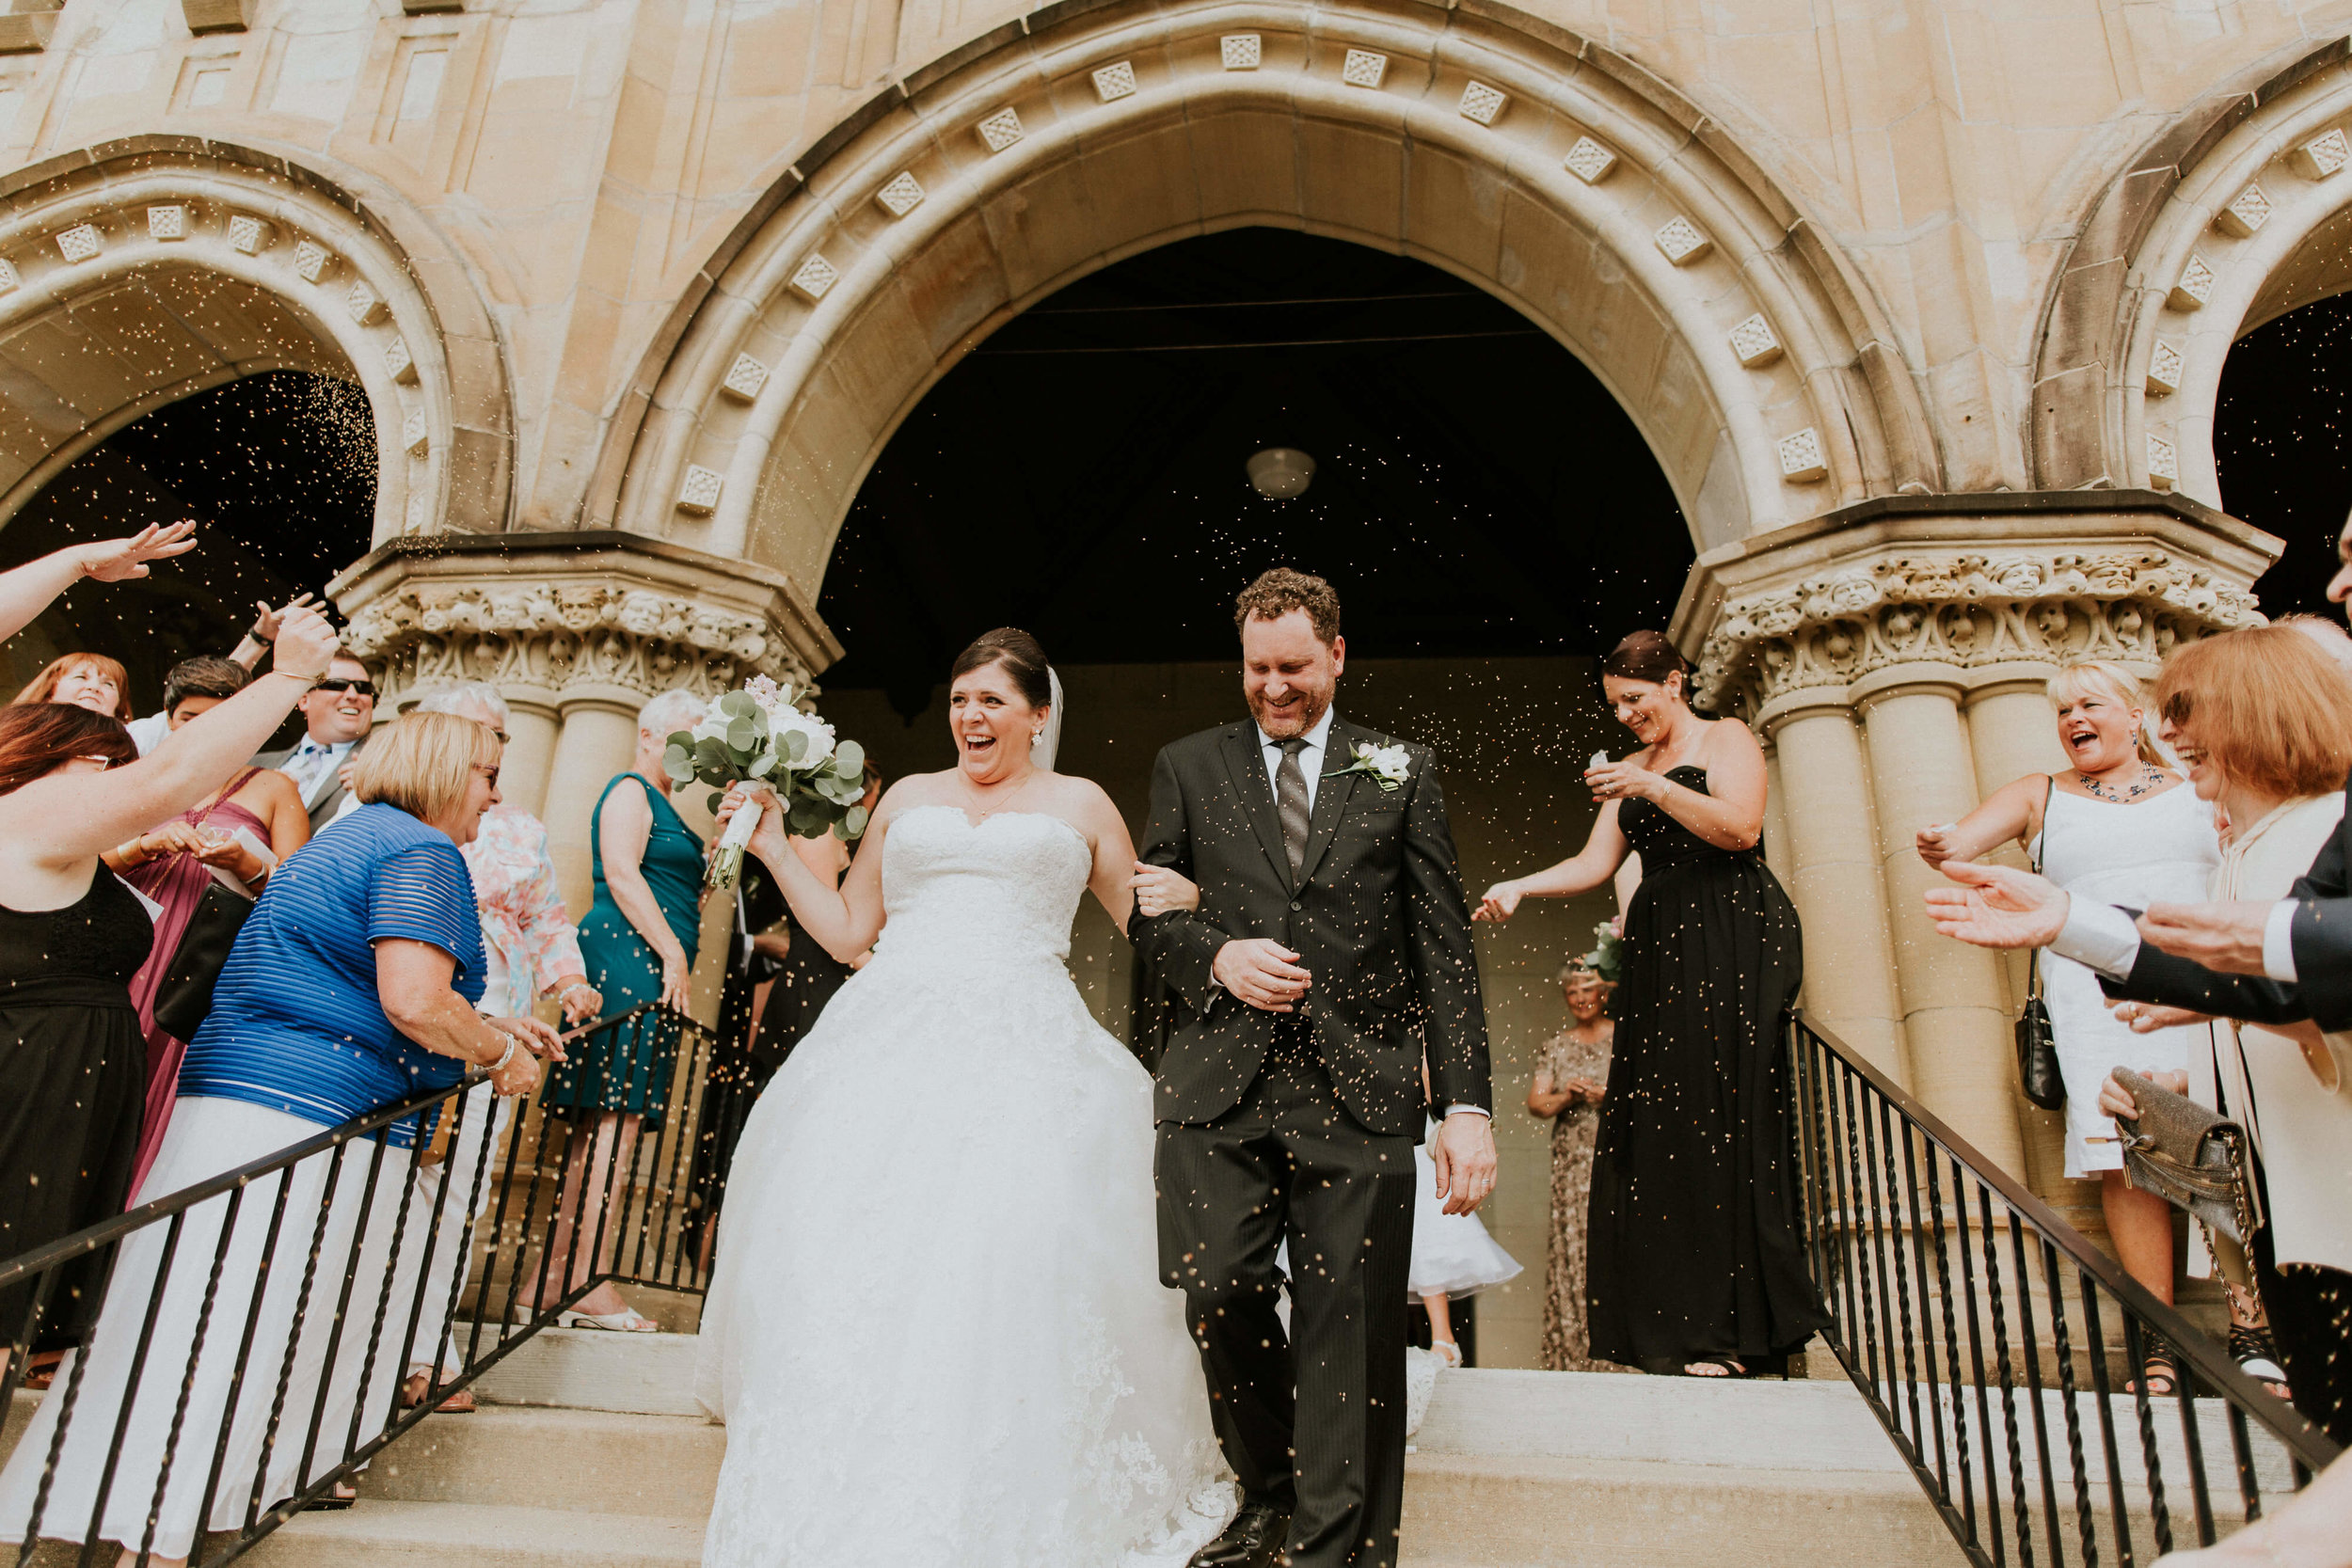 Jackie + Aaron - If you've never been inside The Valentine Theater to see all it's charm, here's your chance to see this classic, beautiful wedding captured by Adore Wedding Photography.